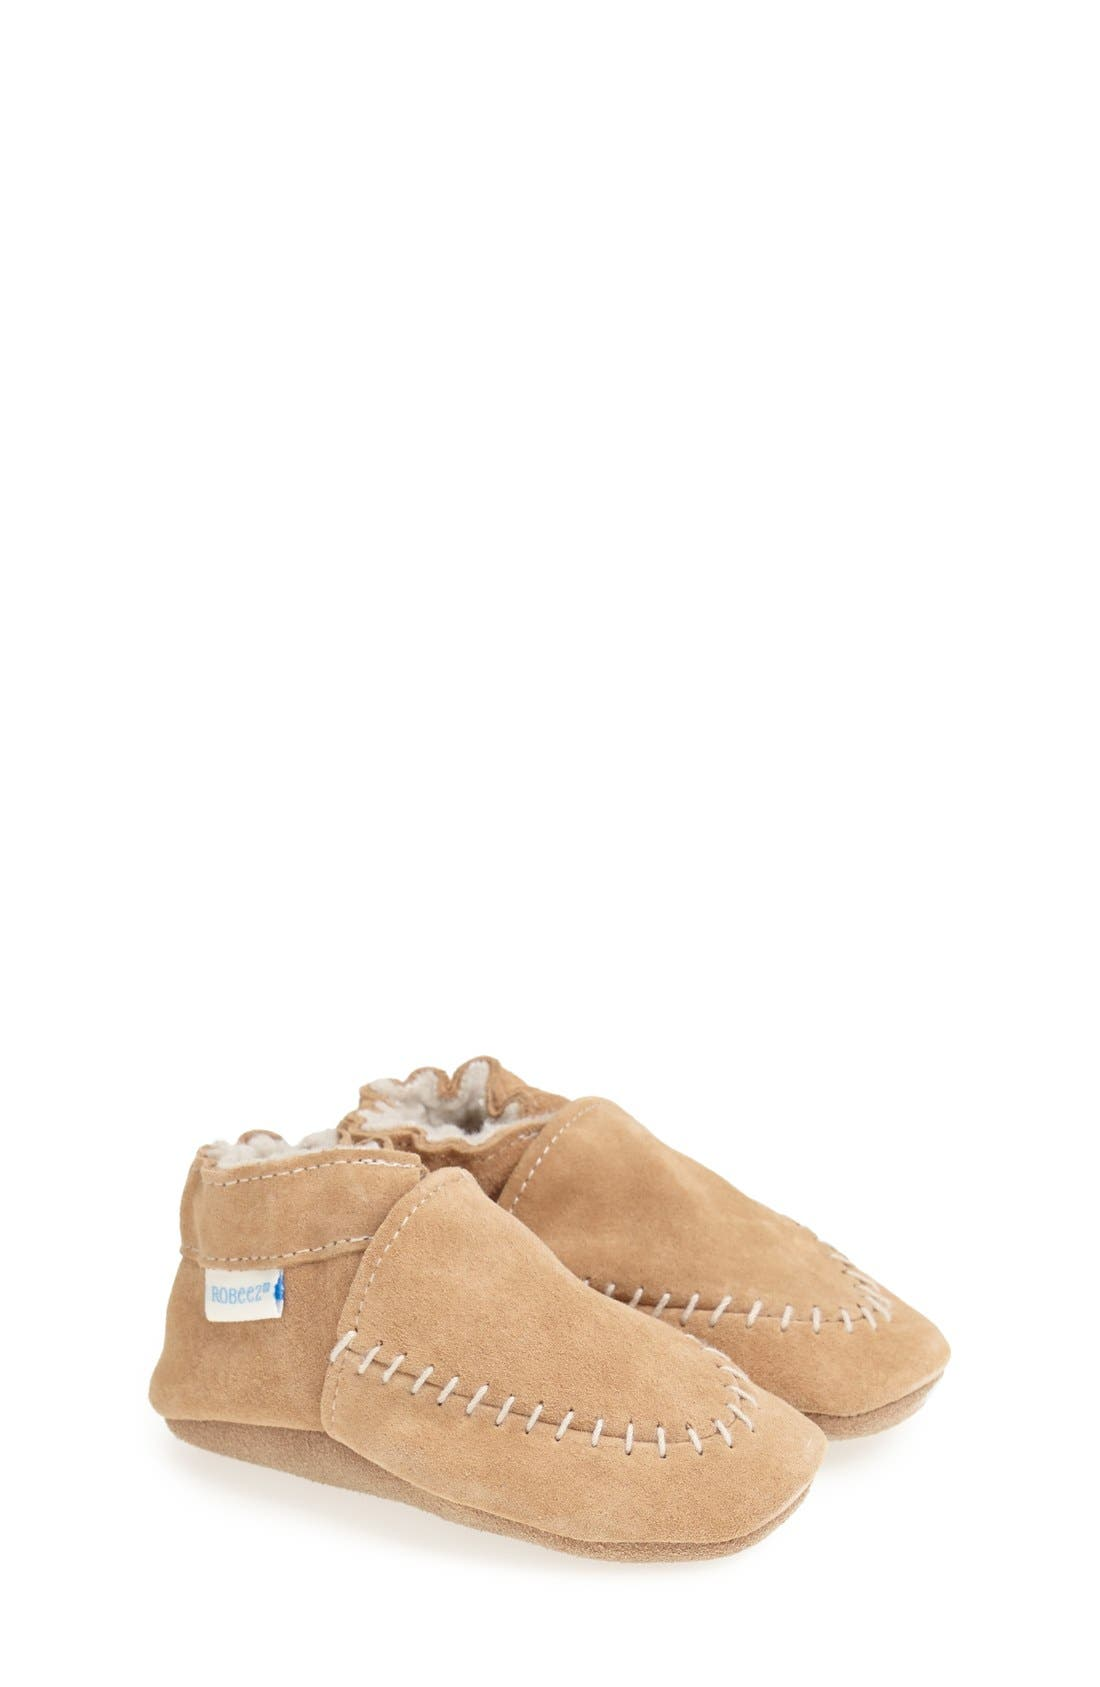 Cozy Moccasin Crib Shoe,                         Main,                         color, Taupe